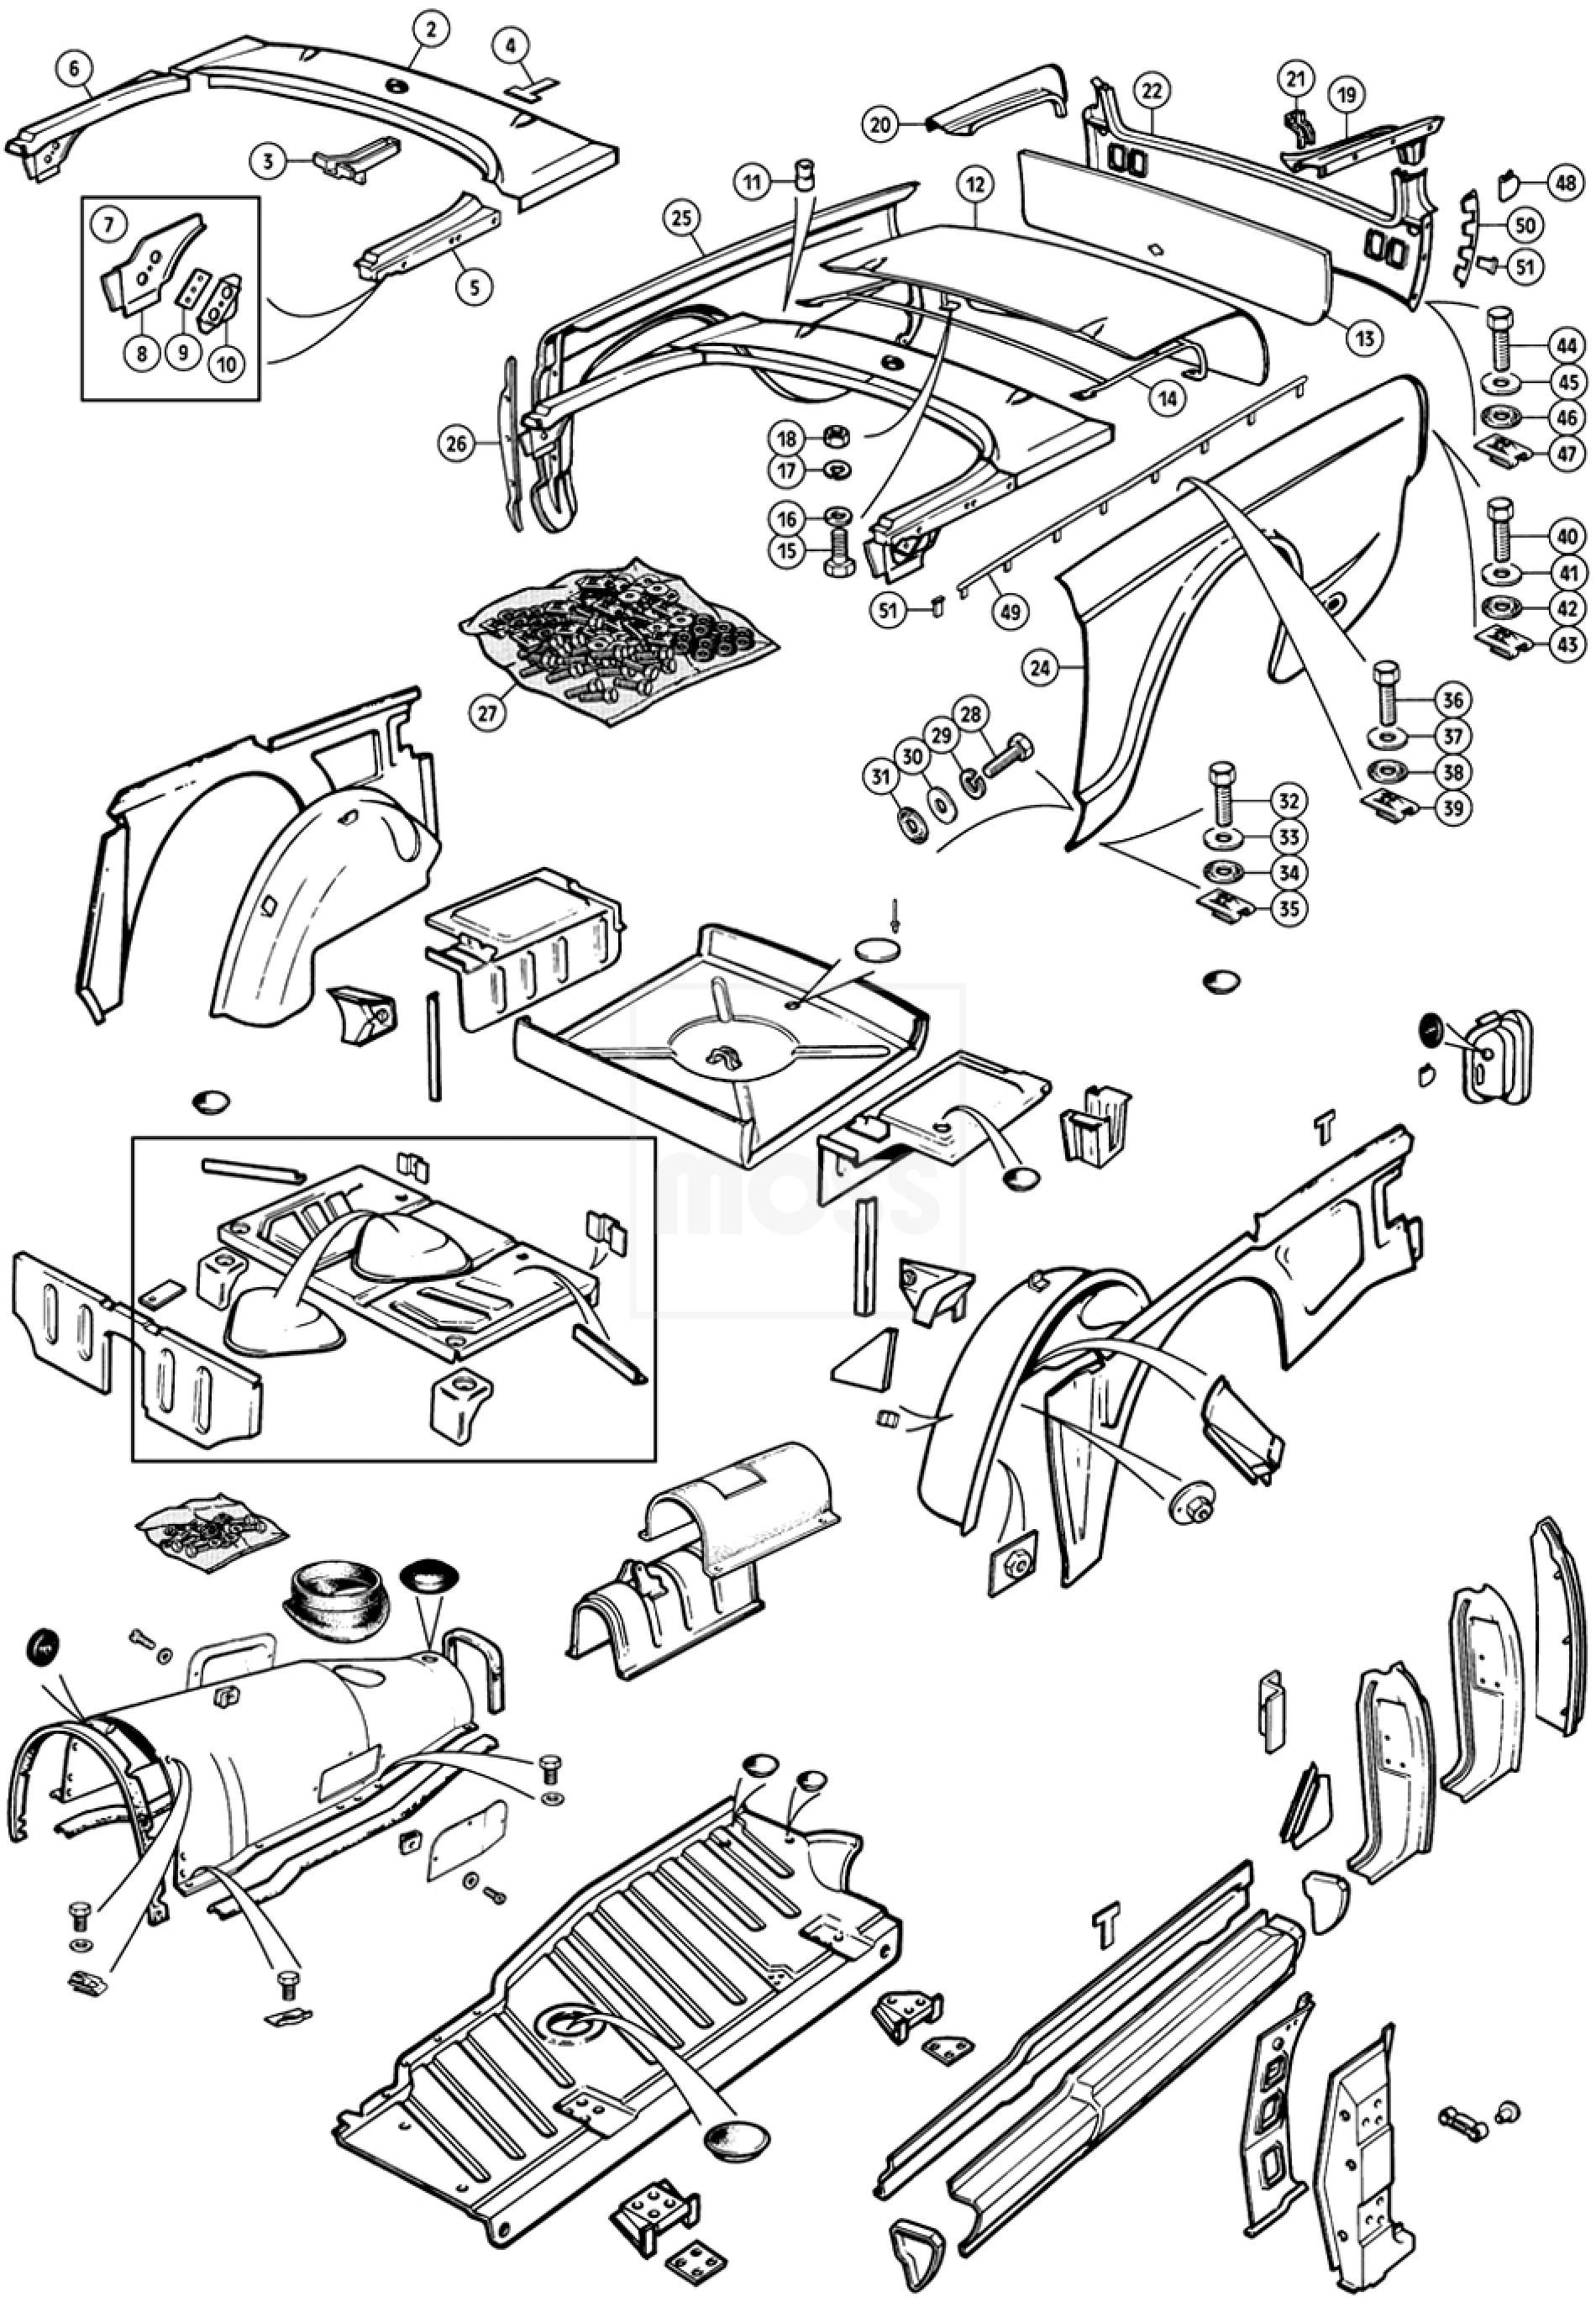 Street Rod Wiring Harness Kit. Diagram. Auto Wiring Diagram